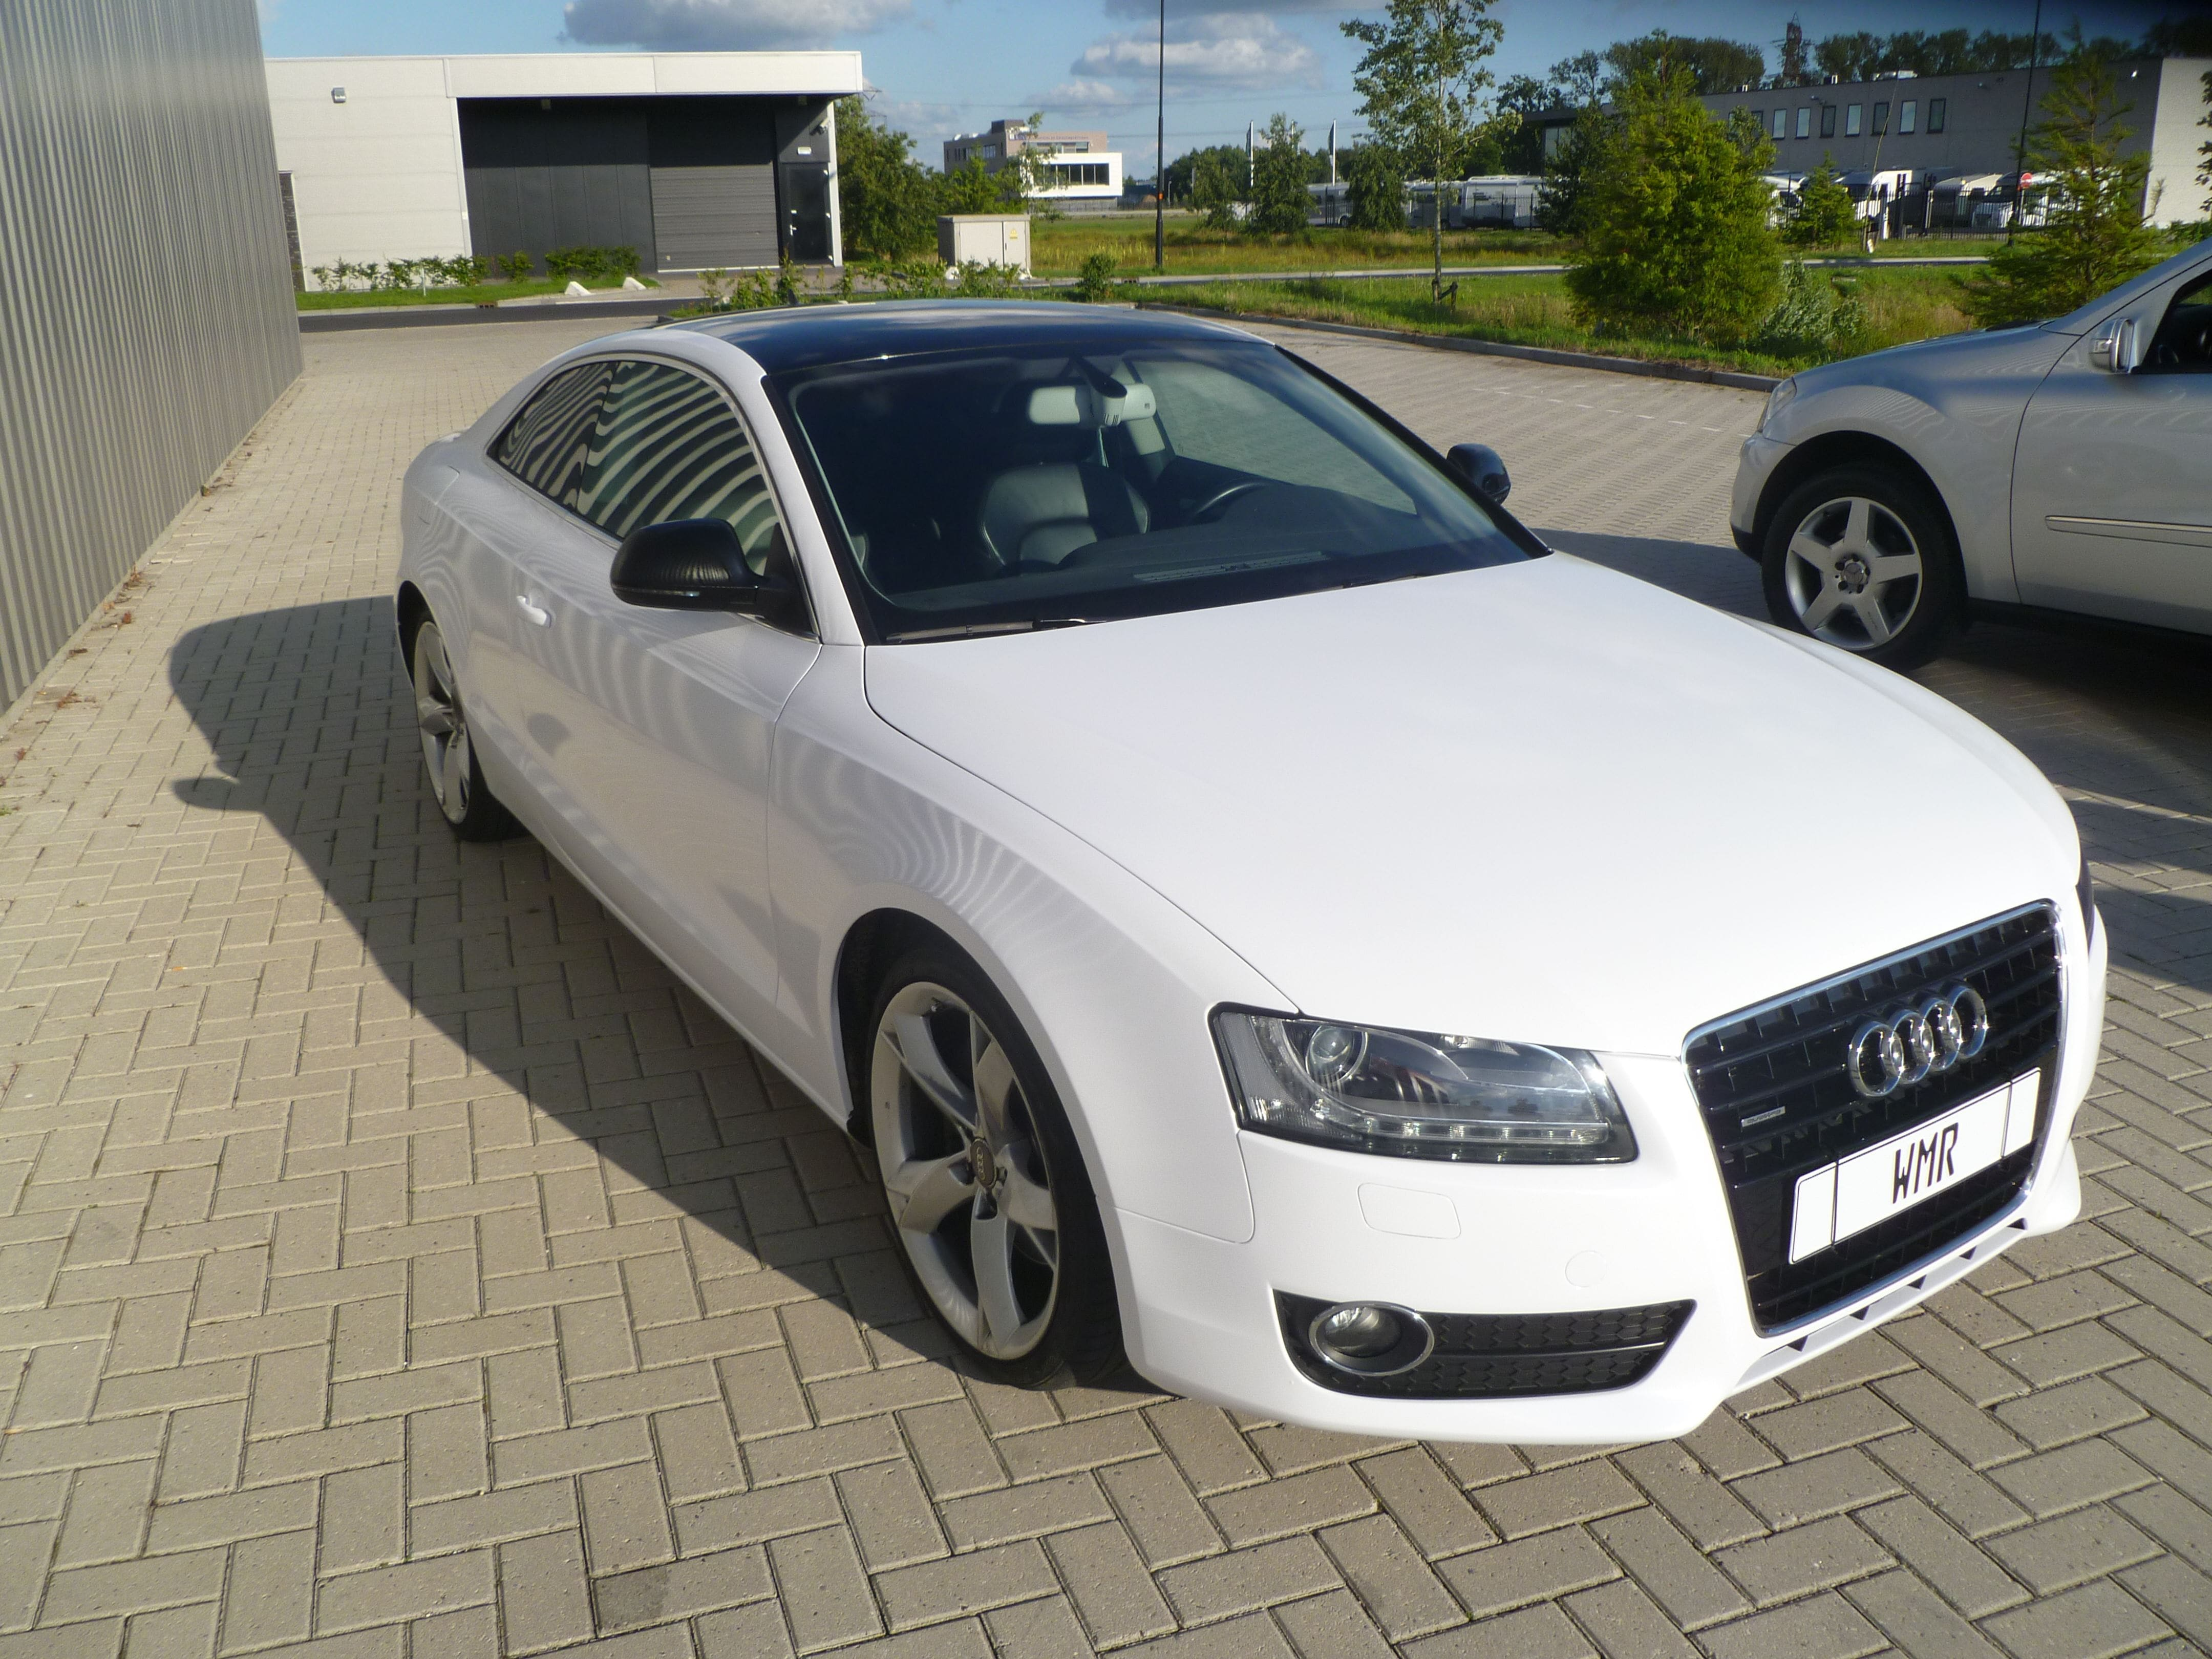 Audi A5 coupe met Metallic Witte Wrap, Carwrapping door Wrapmyride.nu Foto-nr:4746, ©2020